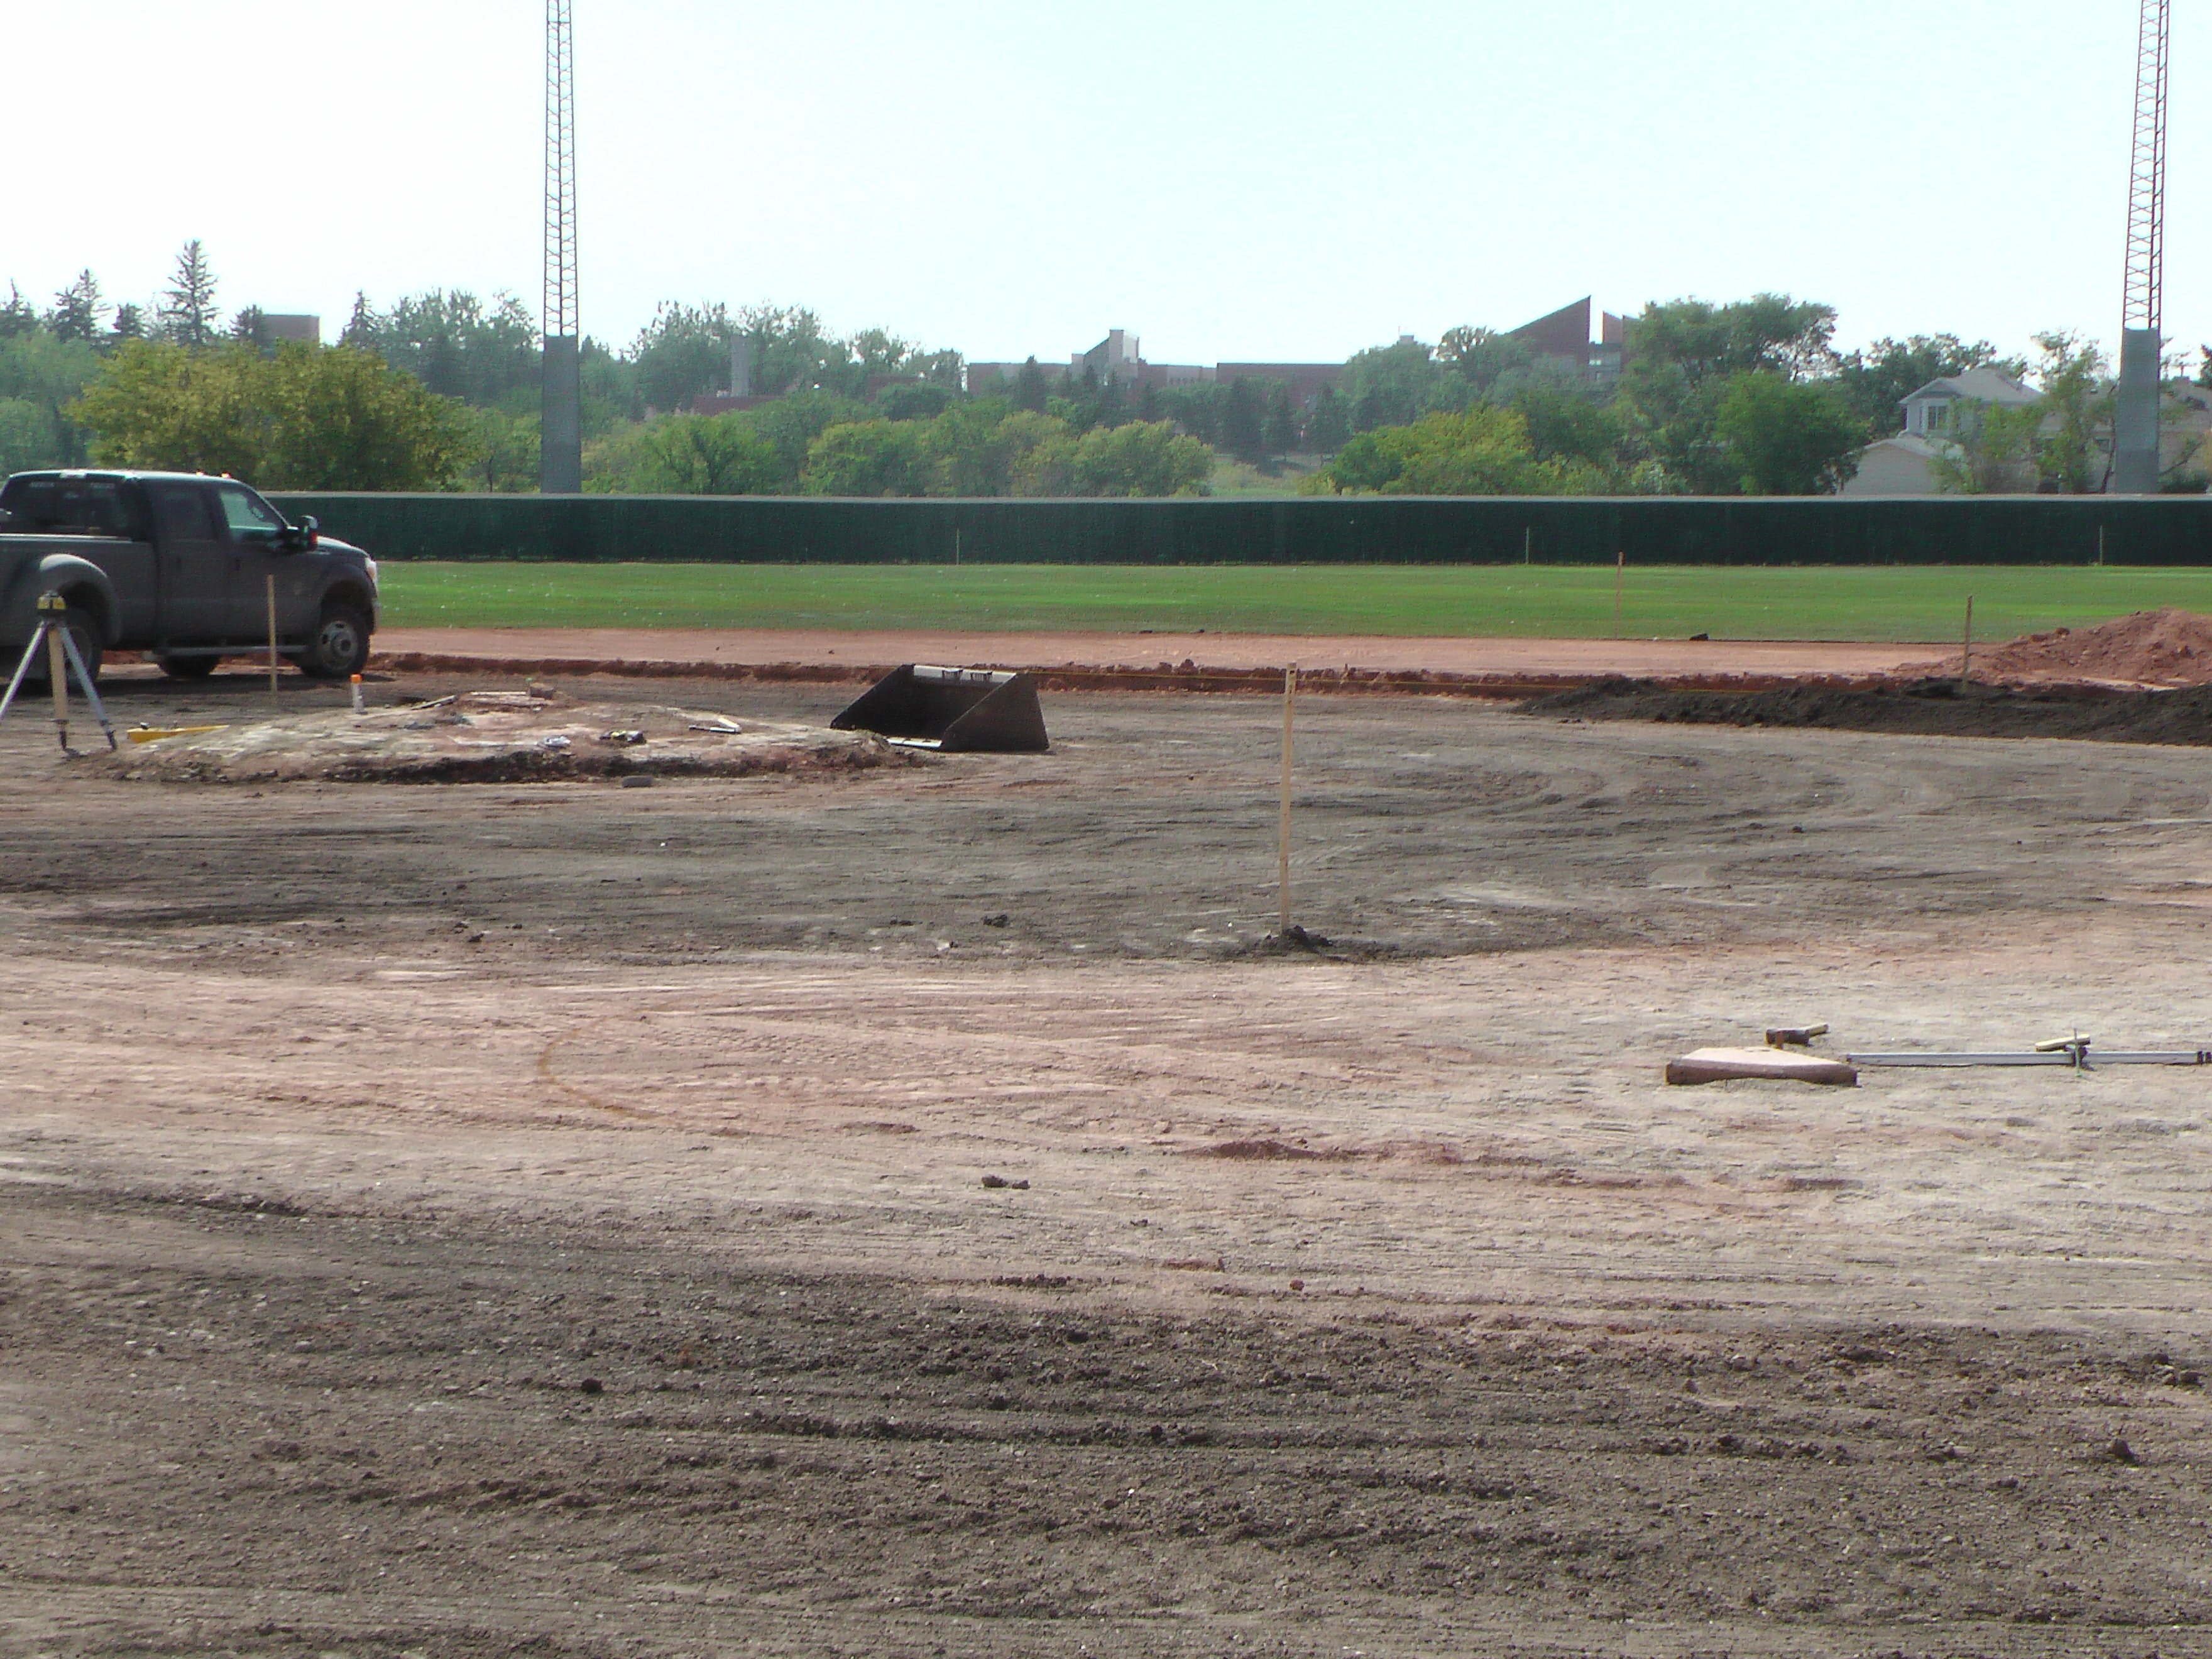 Aug 22 Optimist Park Field Renovations: New Top Soil Going In, after 45 dump trucks of dirt and grass removed! Pics and Video...check back for more!  - Image 13